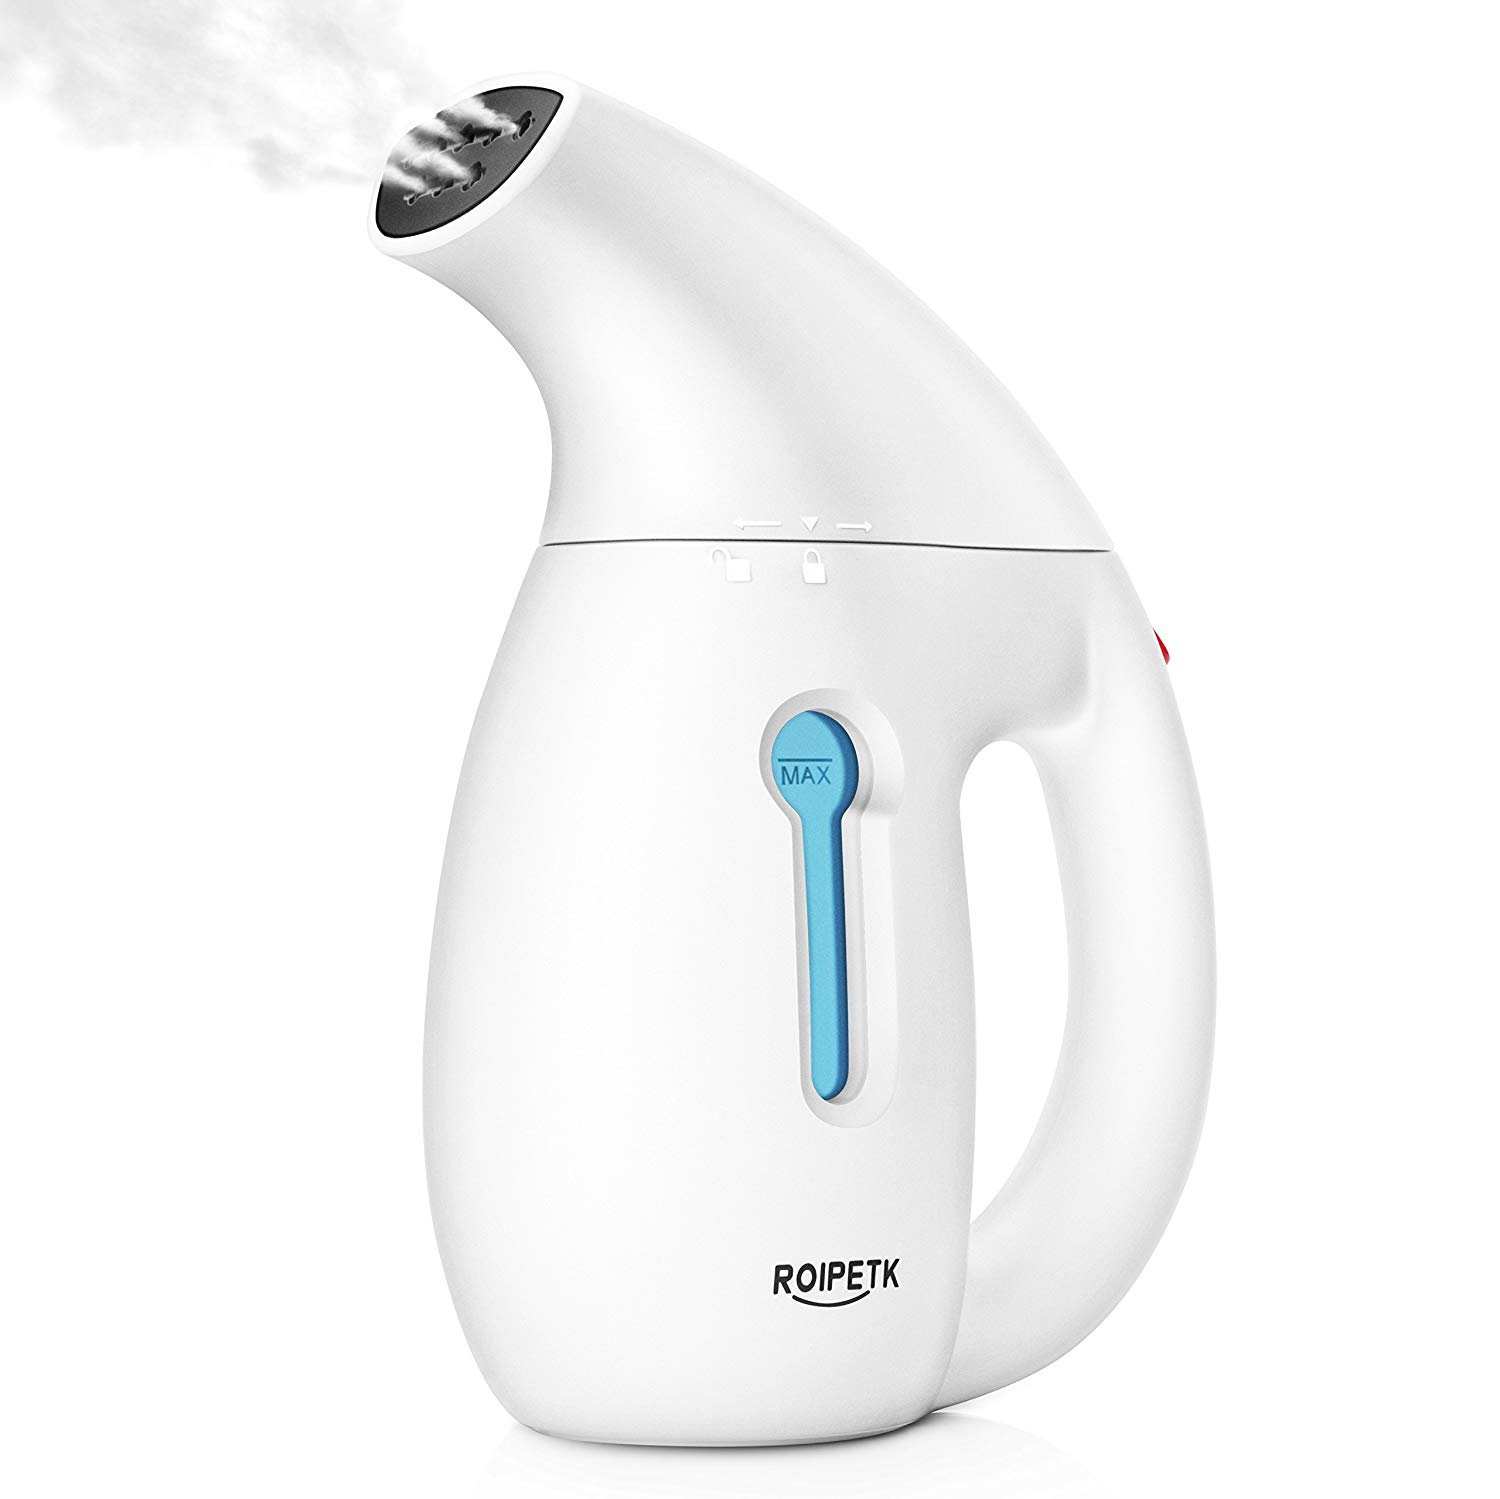 Steamer For Clothes,180ml Handheld Garment Steamer Portable Fabric Steamer 60 Seconds Heat-Up Travel Steamer Automatic Shut-off Safety Protection High Temperature Sterilization for Fabric (white)